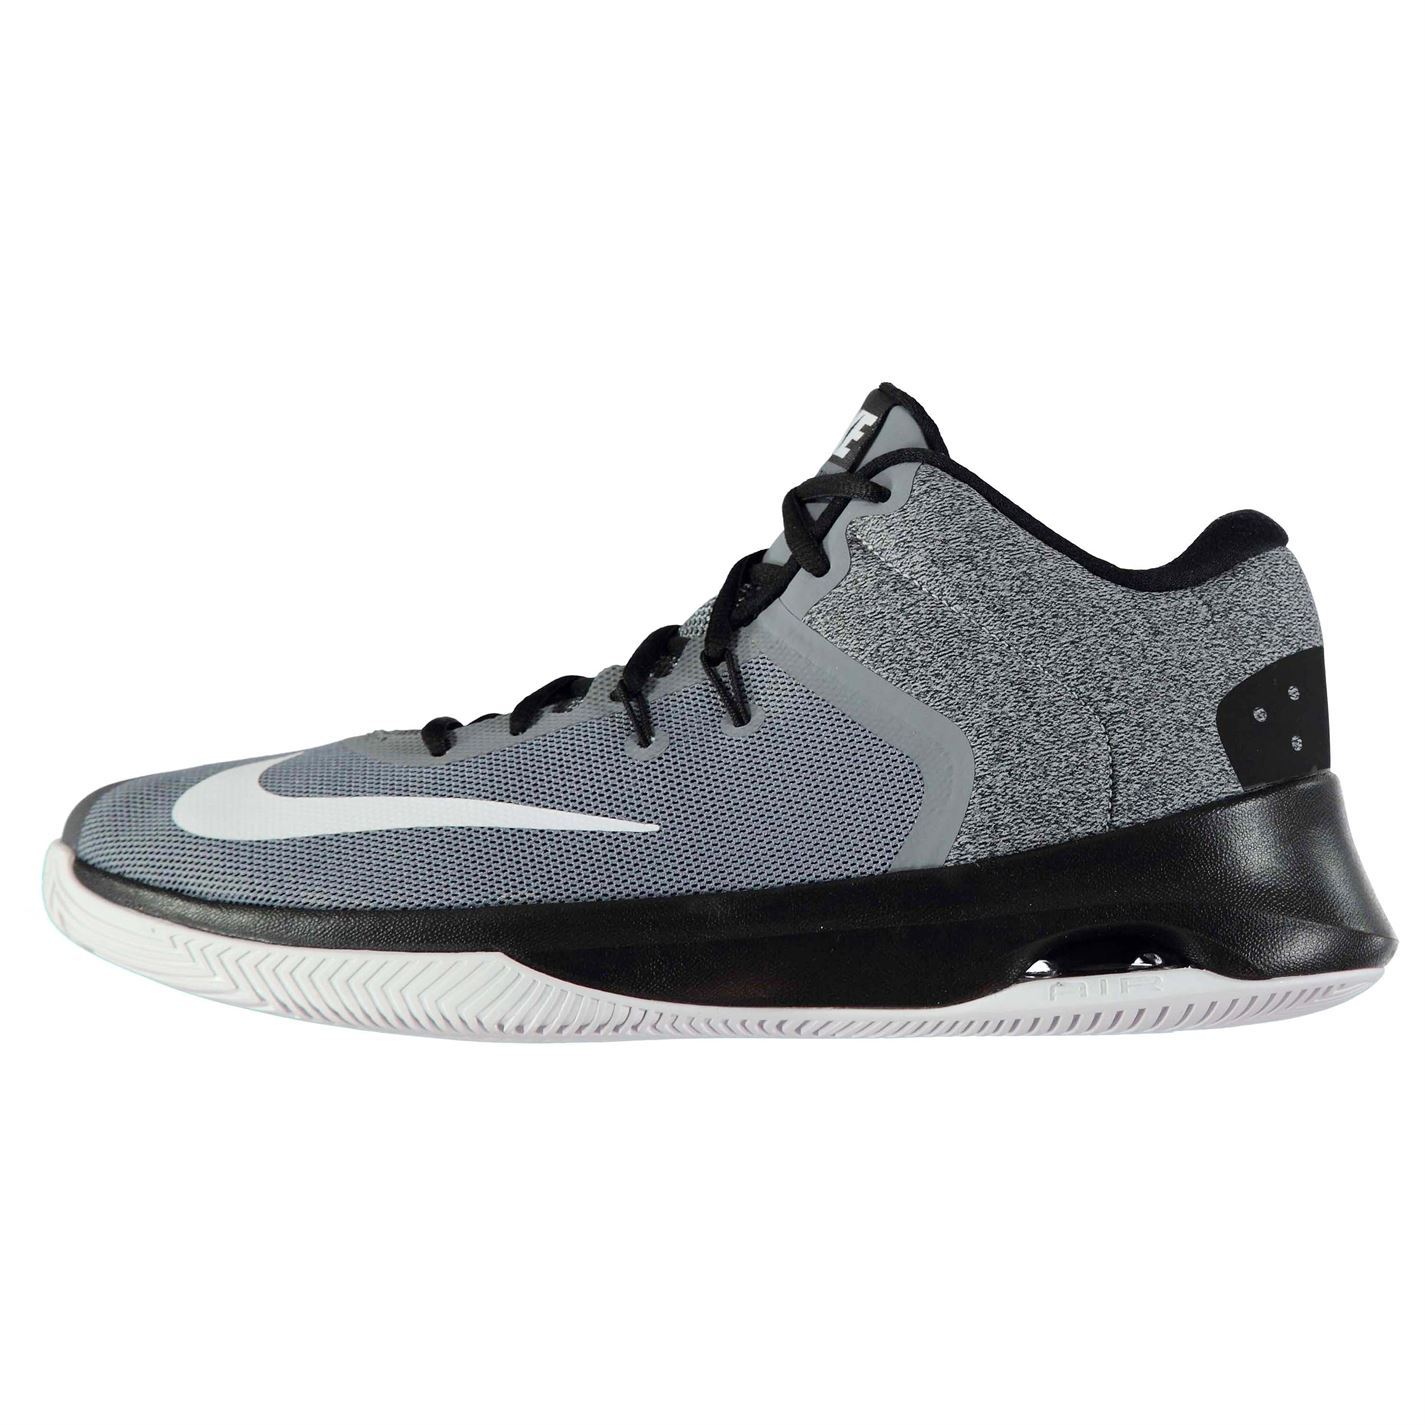 5c6d43e8ada Details about Nike Air Versitile II Basketball Shoes Mens Grey Trainers  Sneakers Footwear